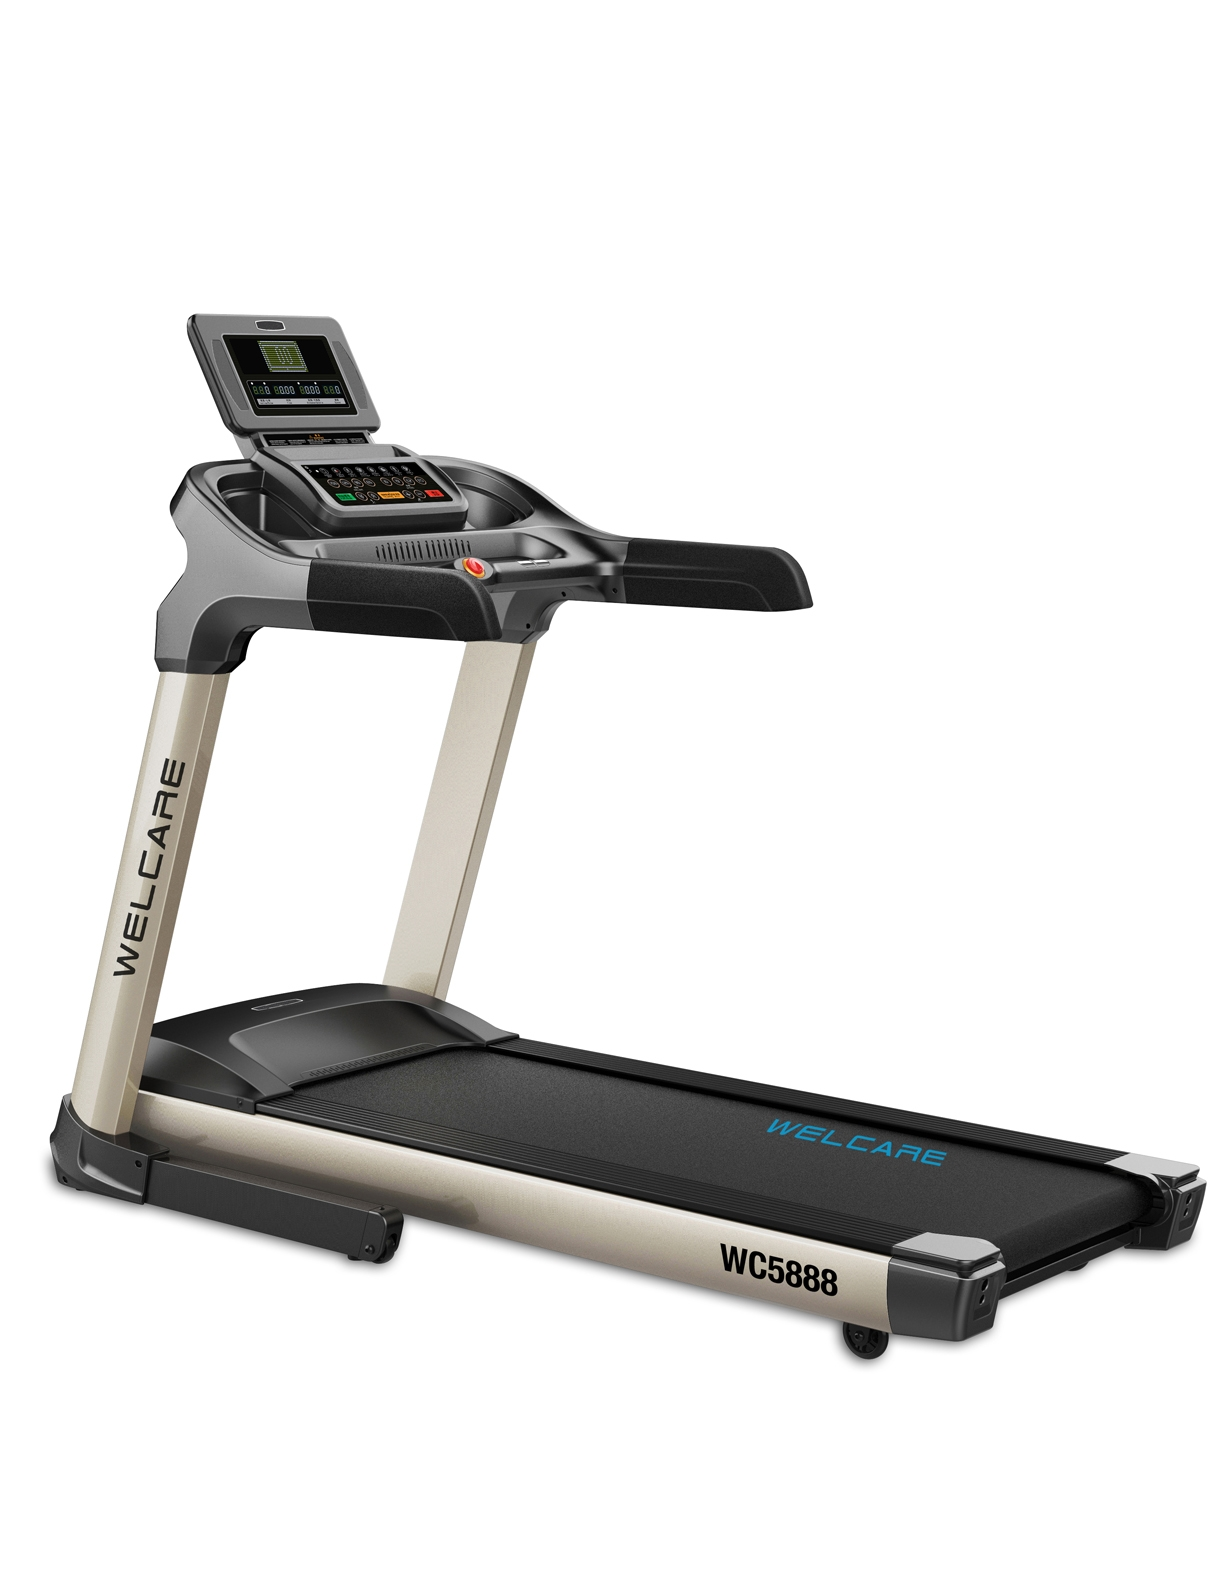 WC5888 AC TREADMILL